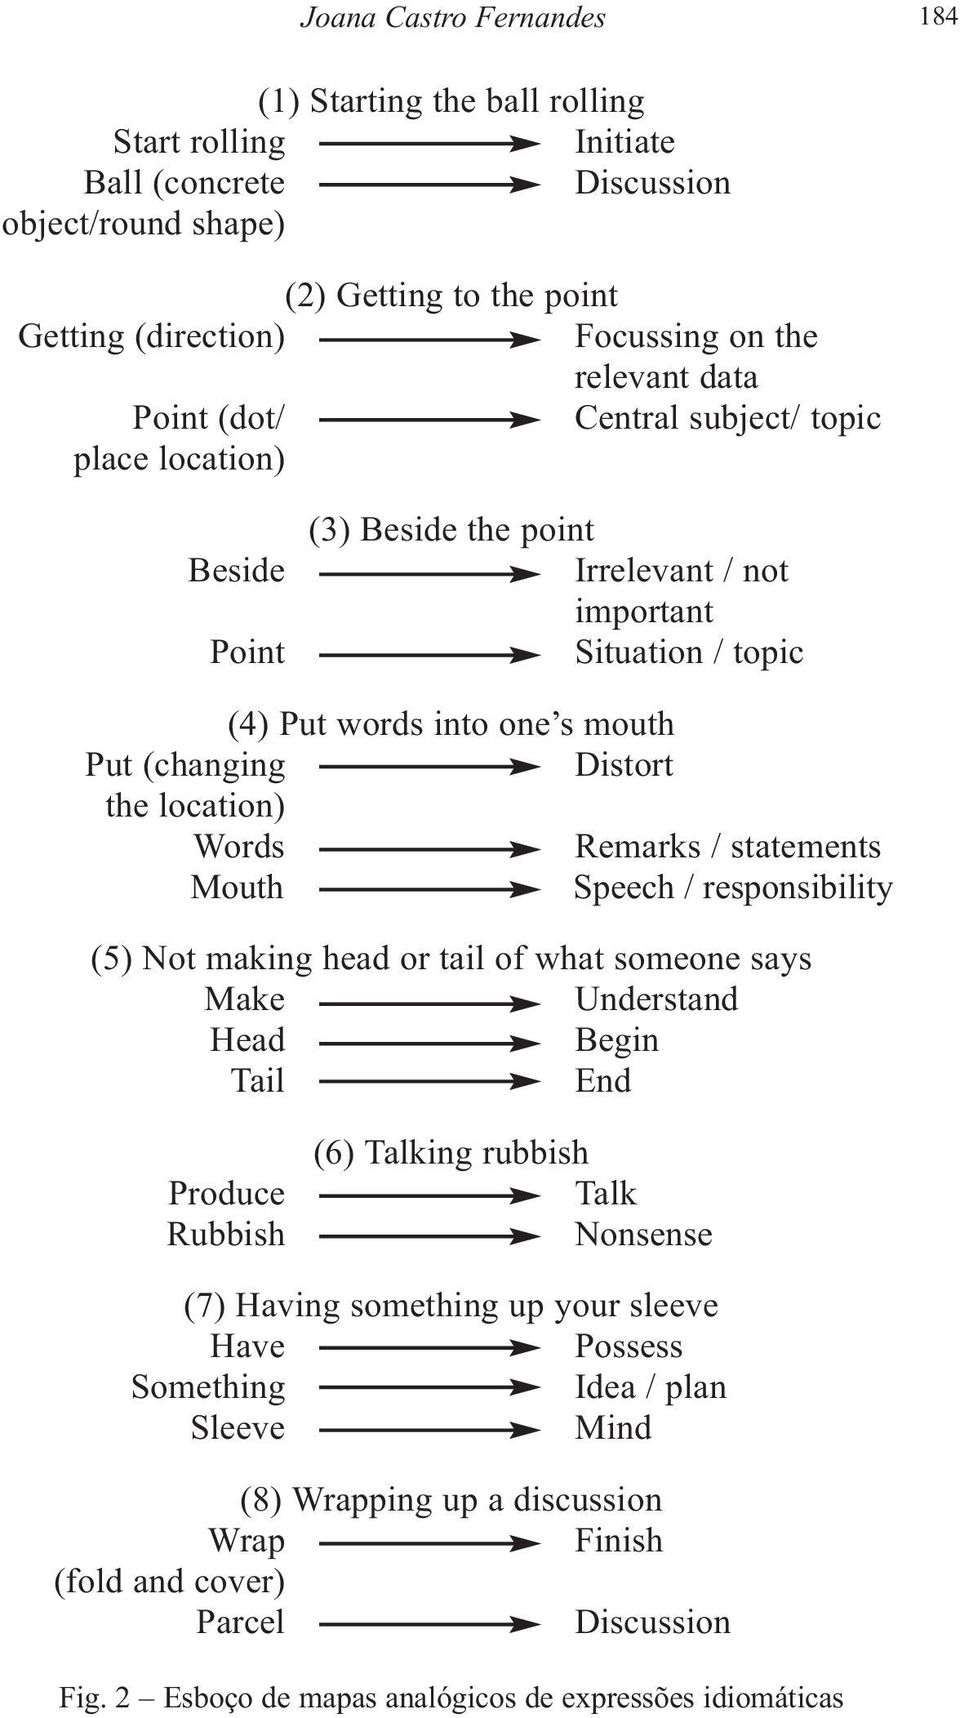 location) Words Remarks / statements Mouth Speech / responsibility (5) Not making head or tail of what someone says Make Understand Head Begin Tail End Produce Rubbish (6) Talking rubbish Talk